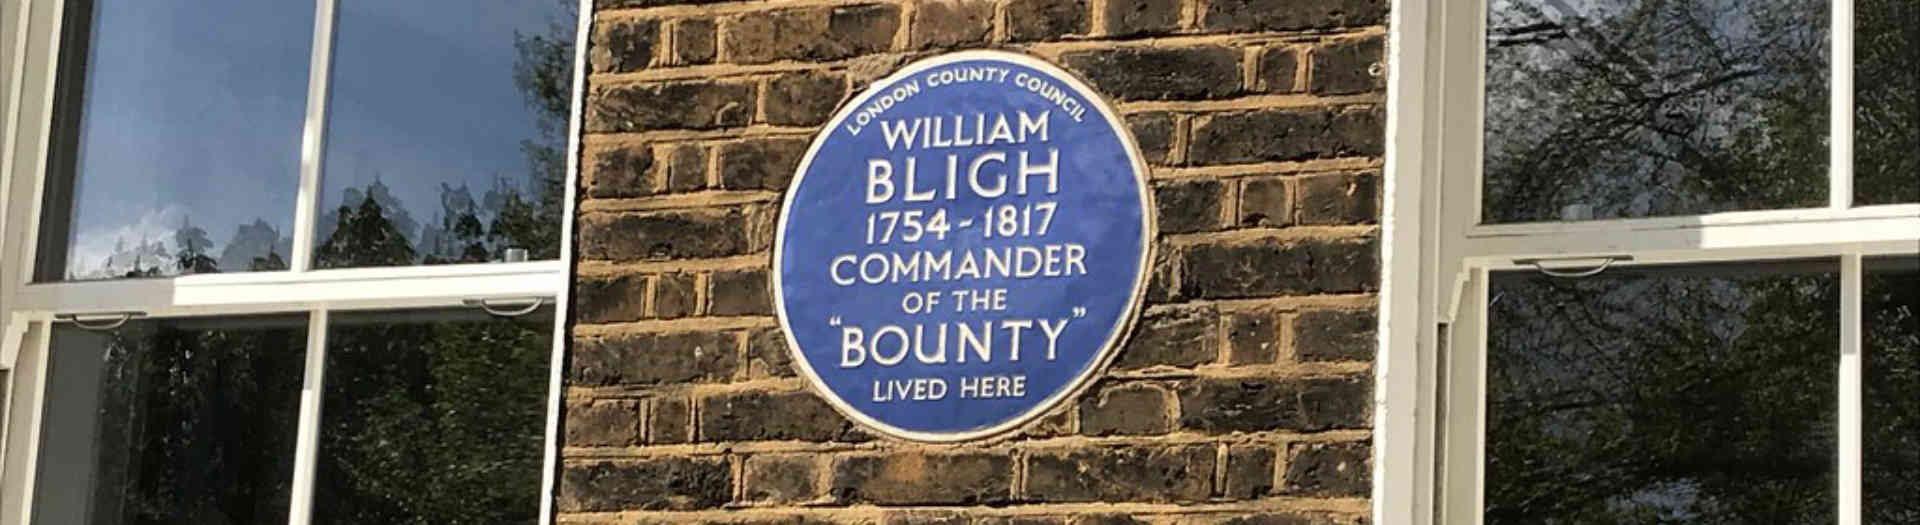 Blue plaque bounty header 1920 x 525 - Blue Plaque - The Writing is on the Wall